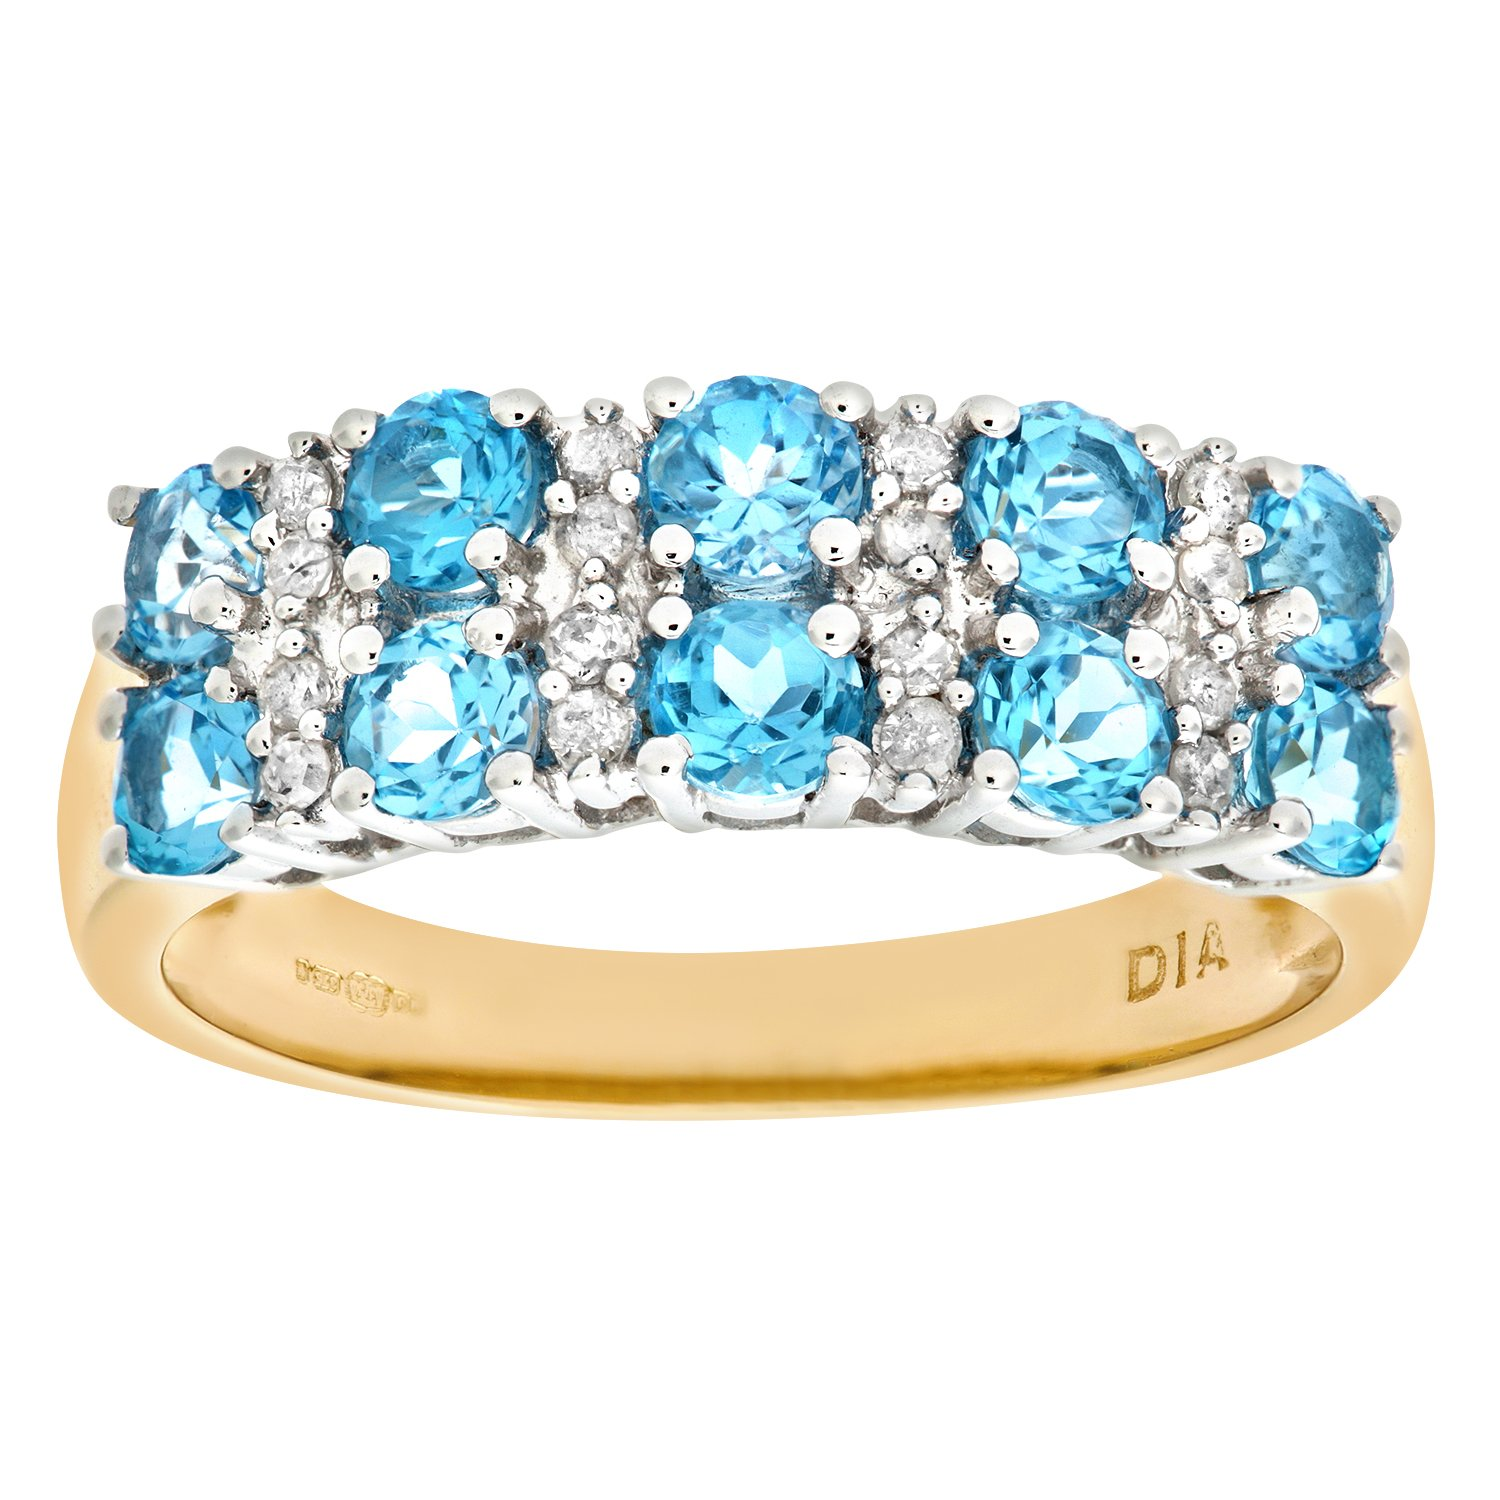 Naava 9ct Yellow Gold La s Diamond and Blue Topaz Ring Amazon